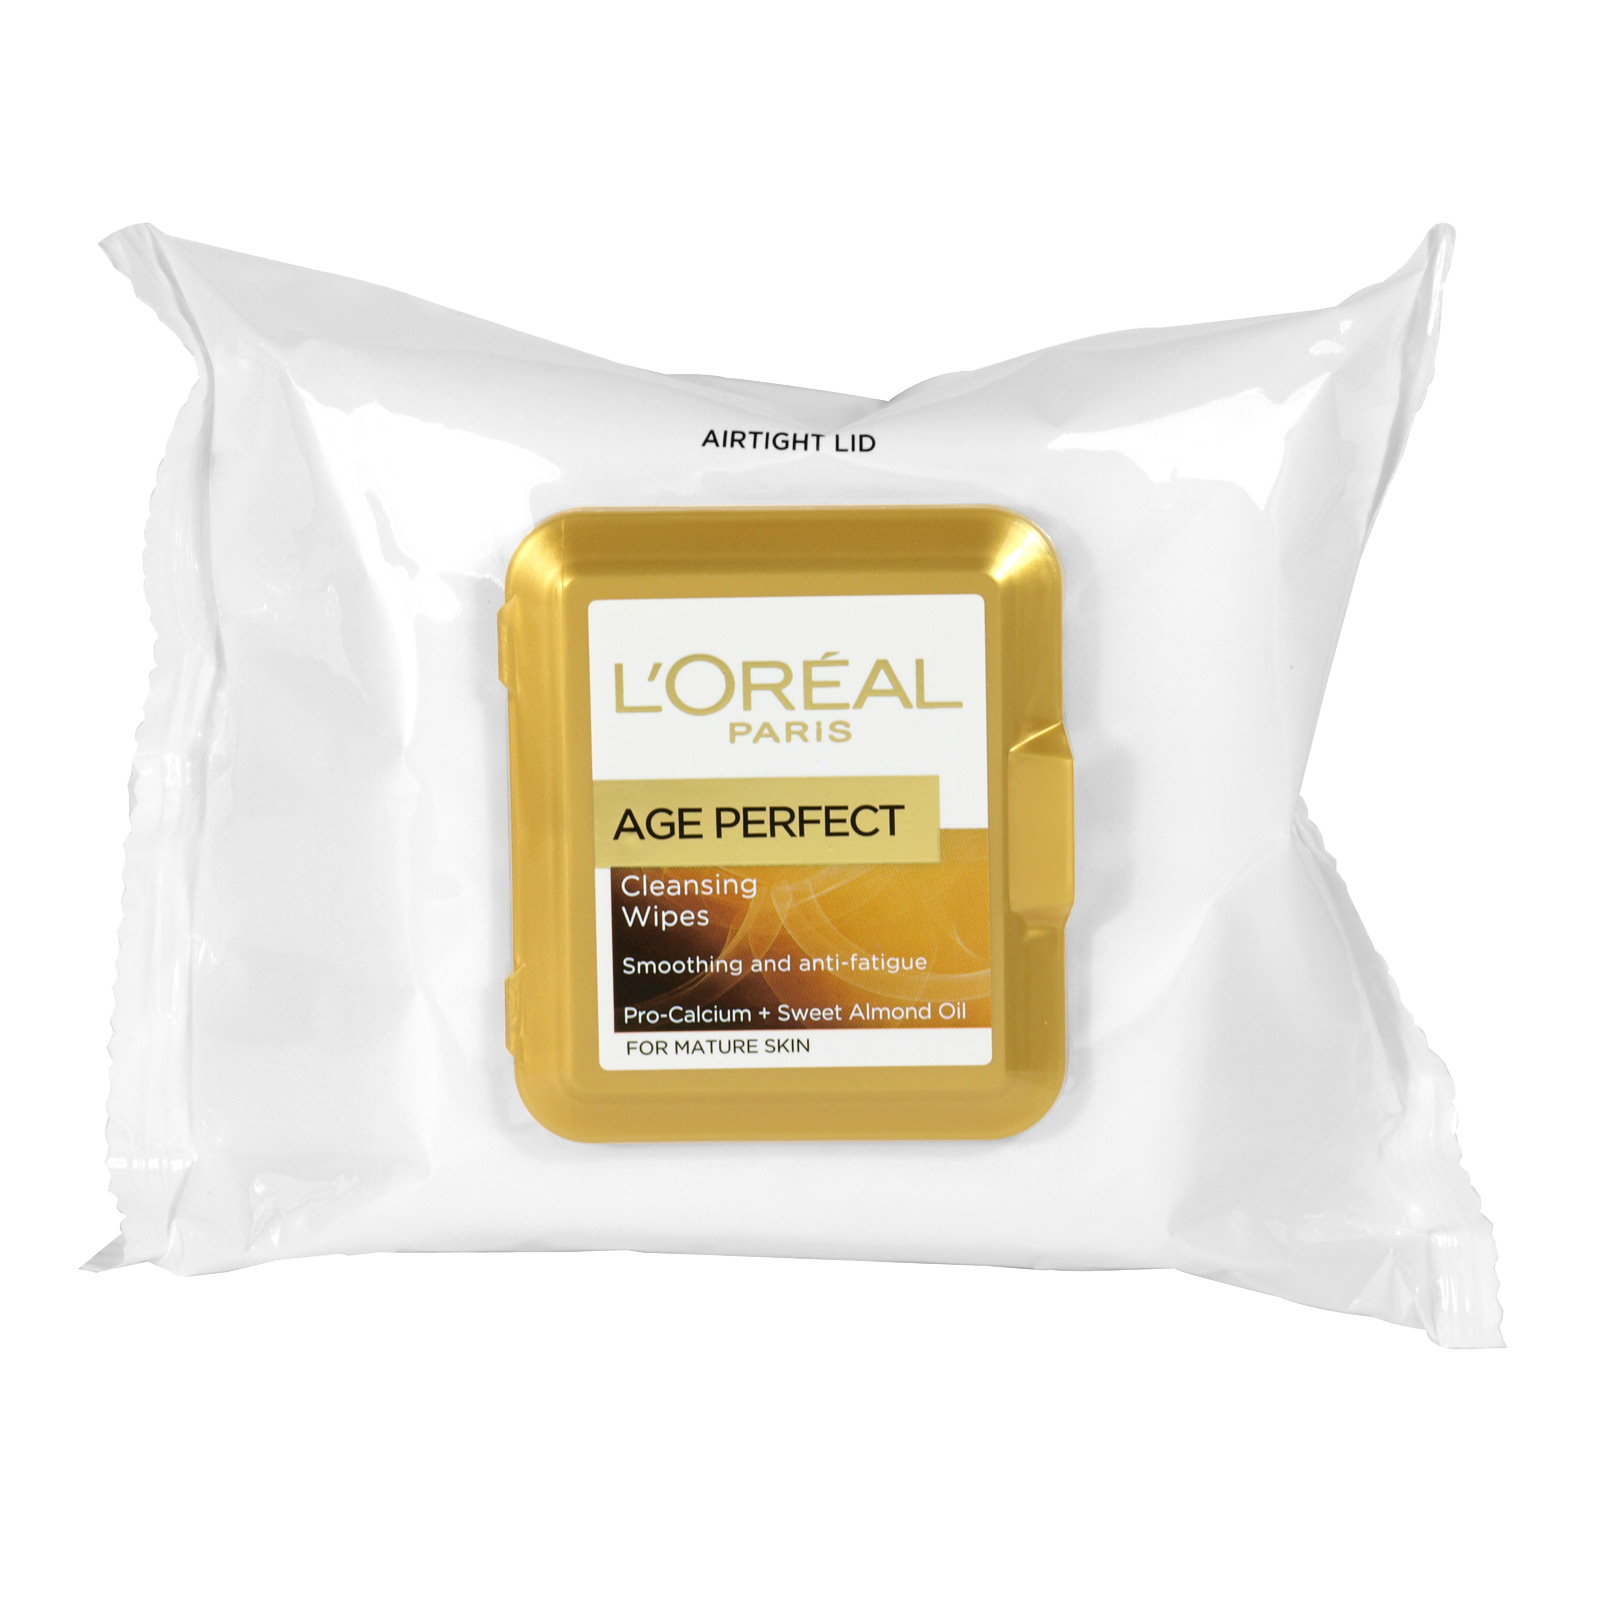 LOREAL AGE PERFECT 25 CLEANSING WIPES